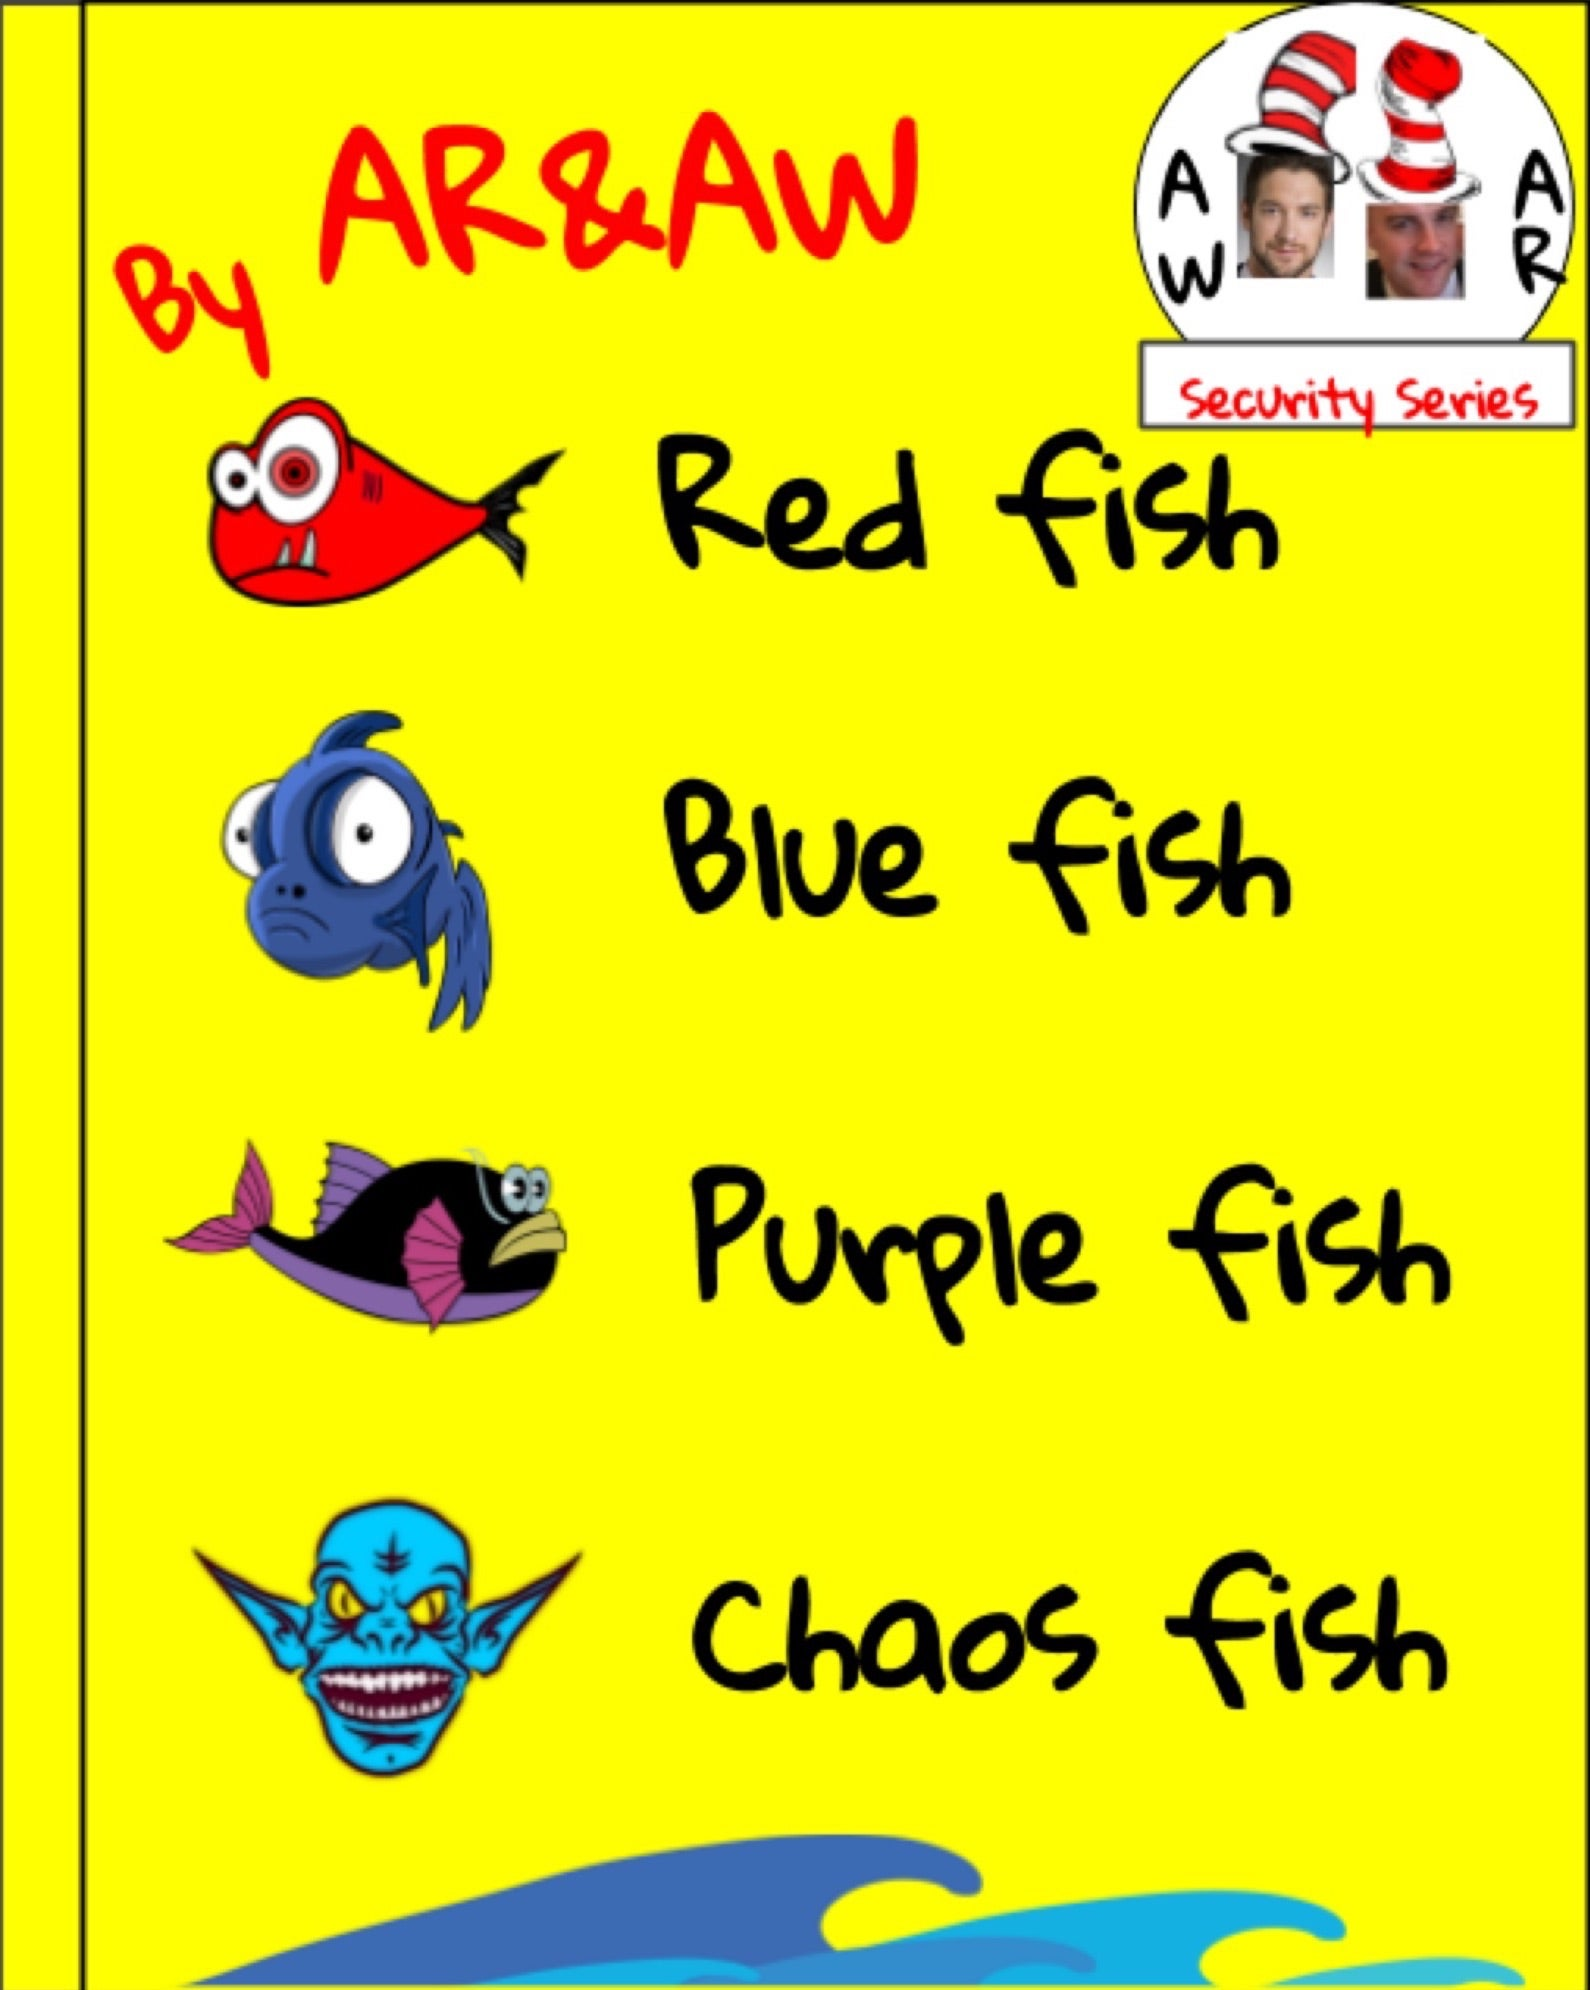 Red fish, blue fish, purple fish, chaos fish